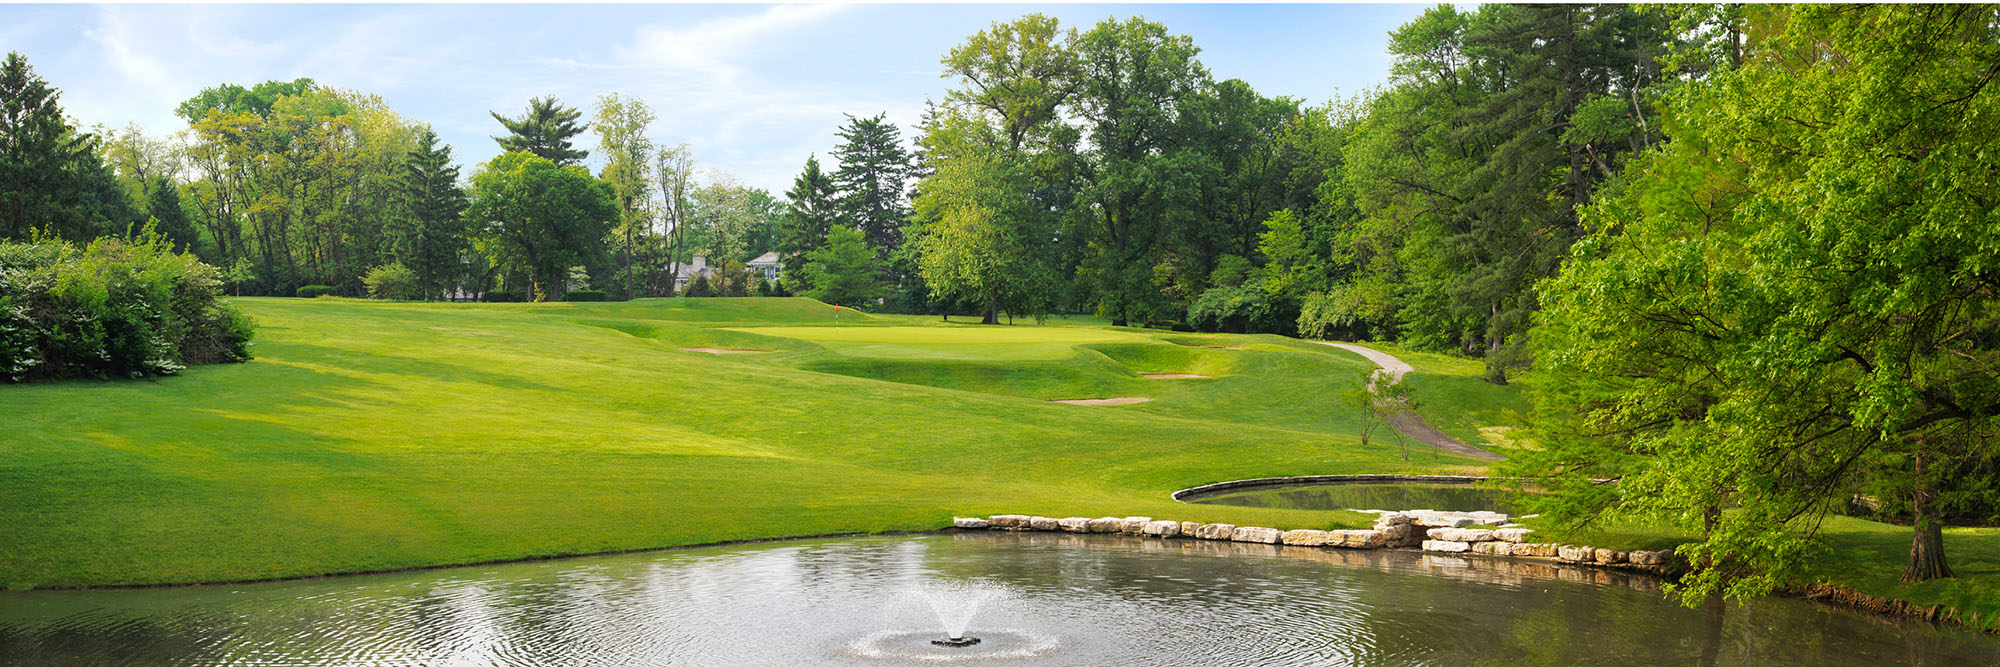 Golf Course Image - St. Louis Country Club No. 3